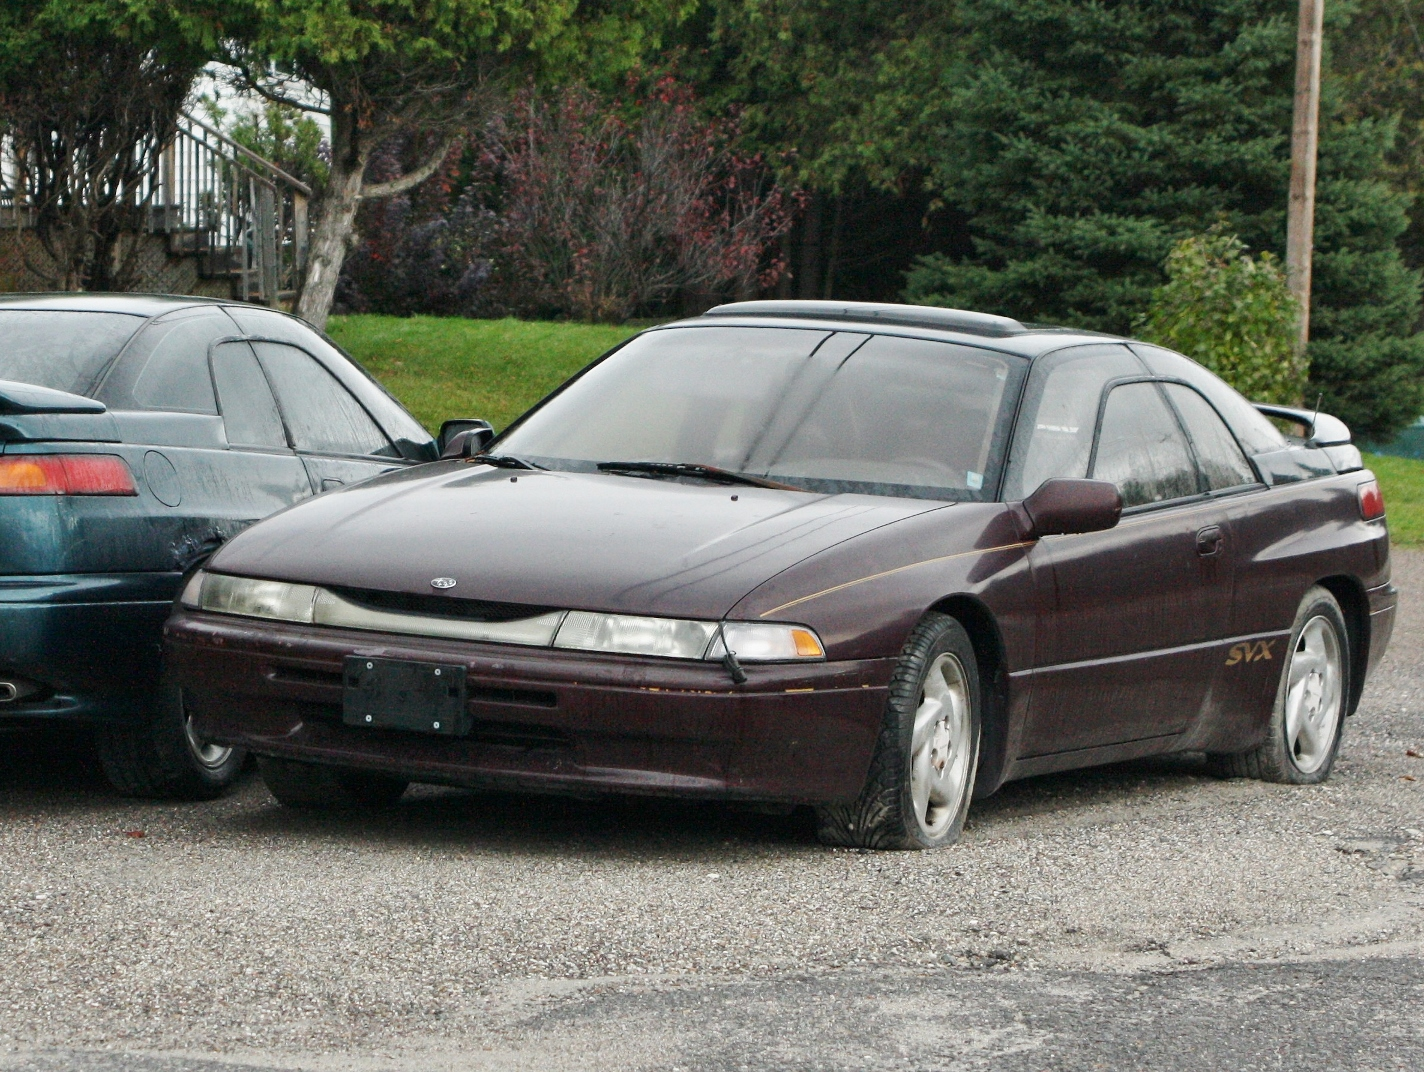 Svx fyi driven to attraction a little closer its tires may be flat but that block heater cord is vanachro Images